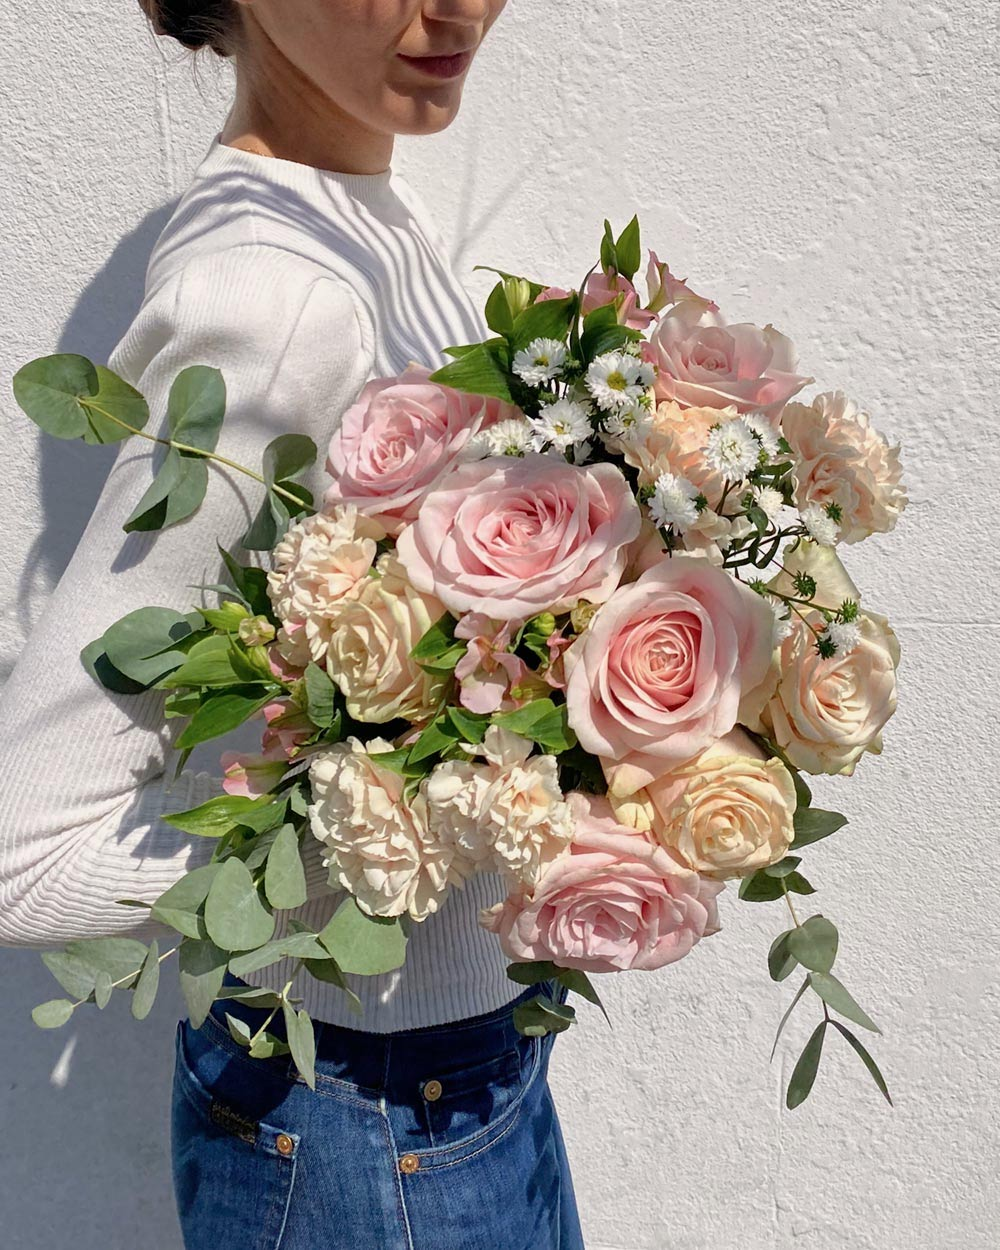 girl with pink bouquet of flowers - flower delivery uk